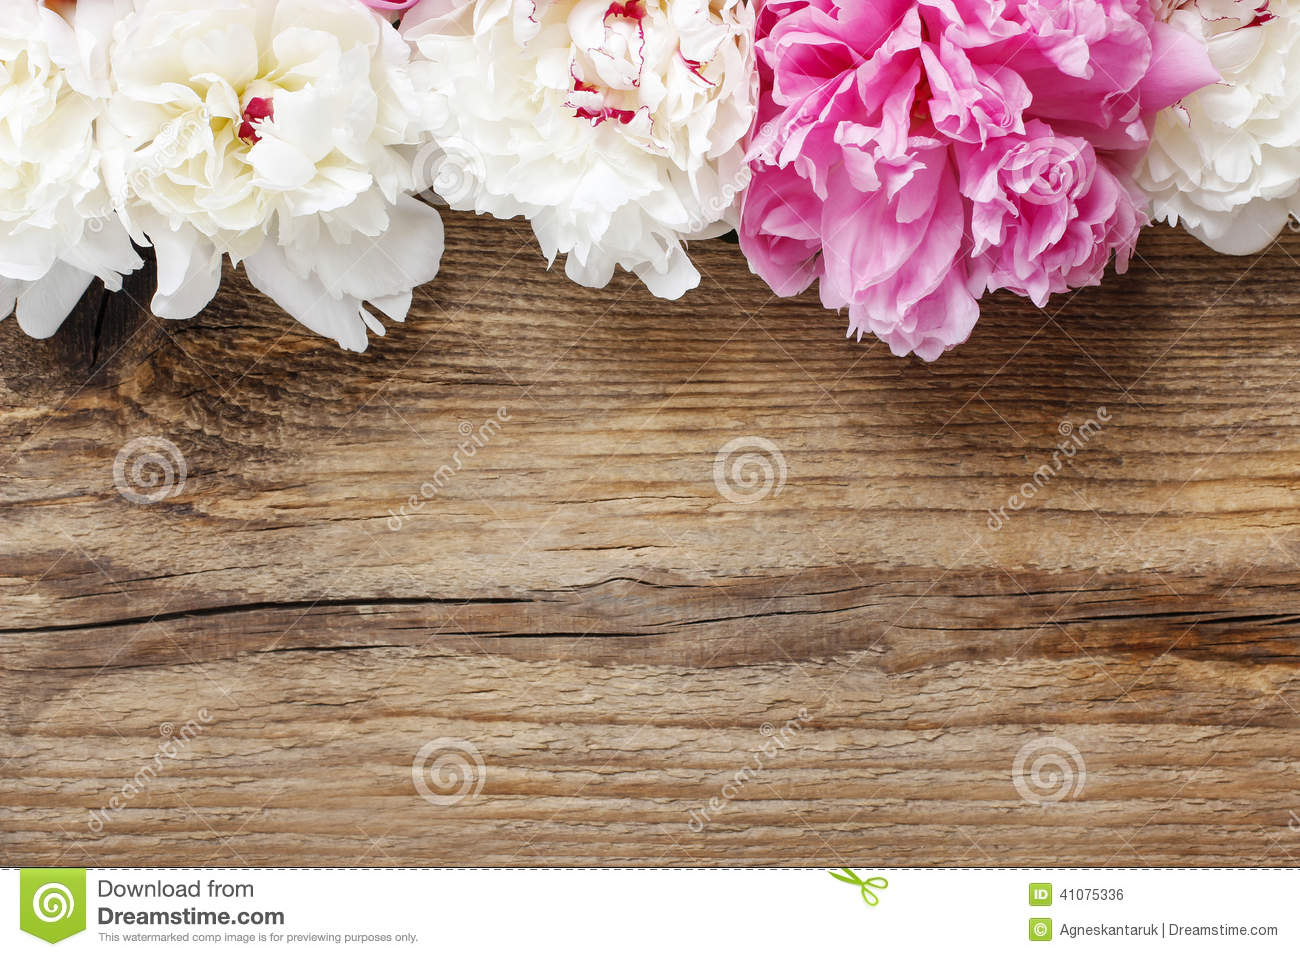 Stunning Pink Peonies On White Light Rustic Wooden